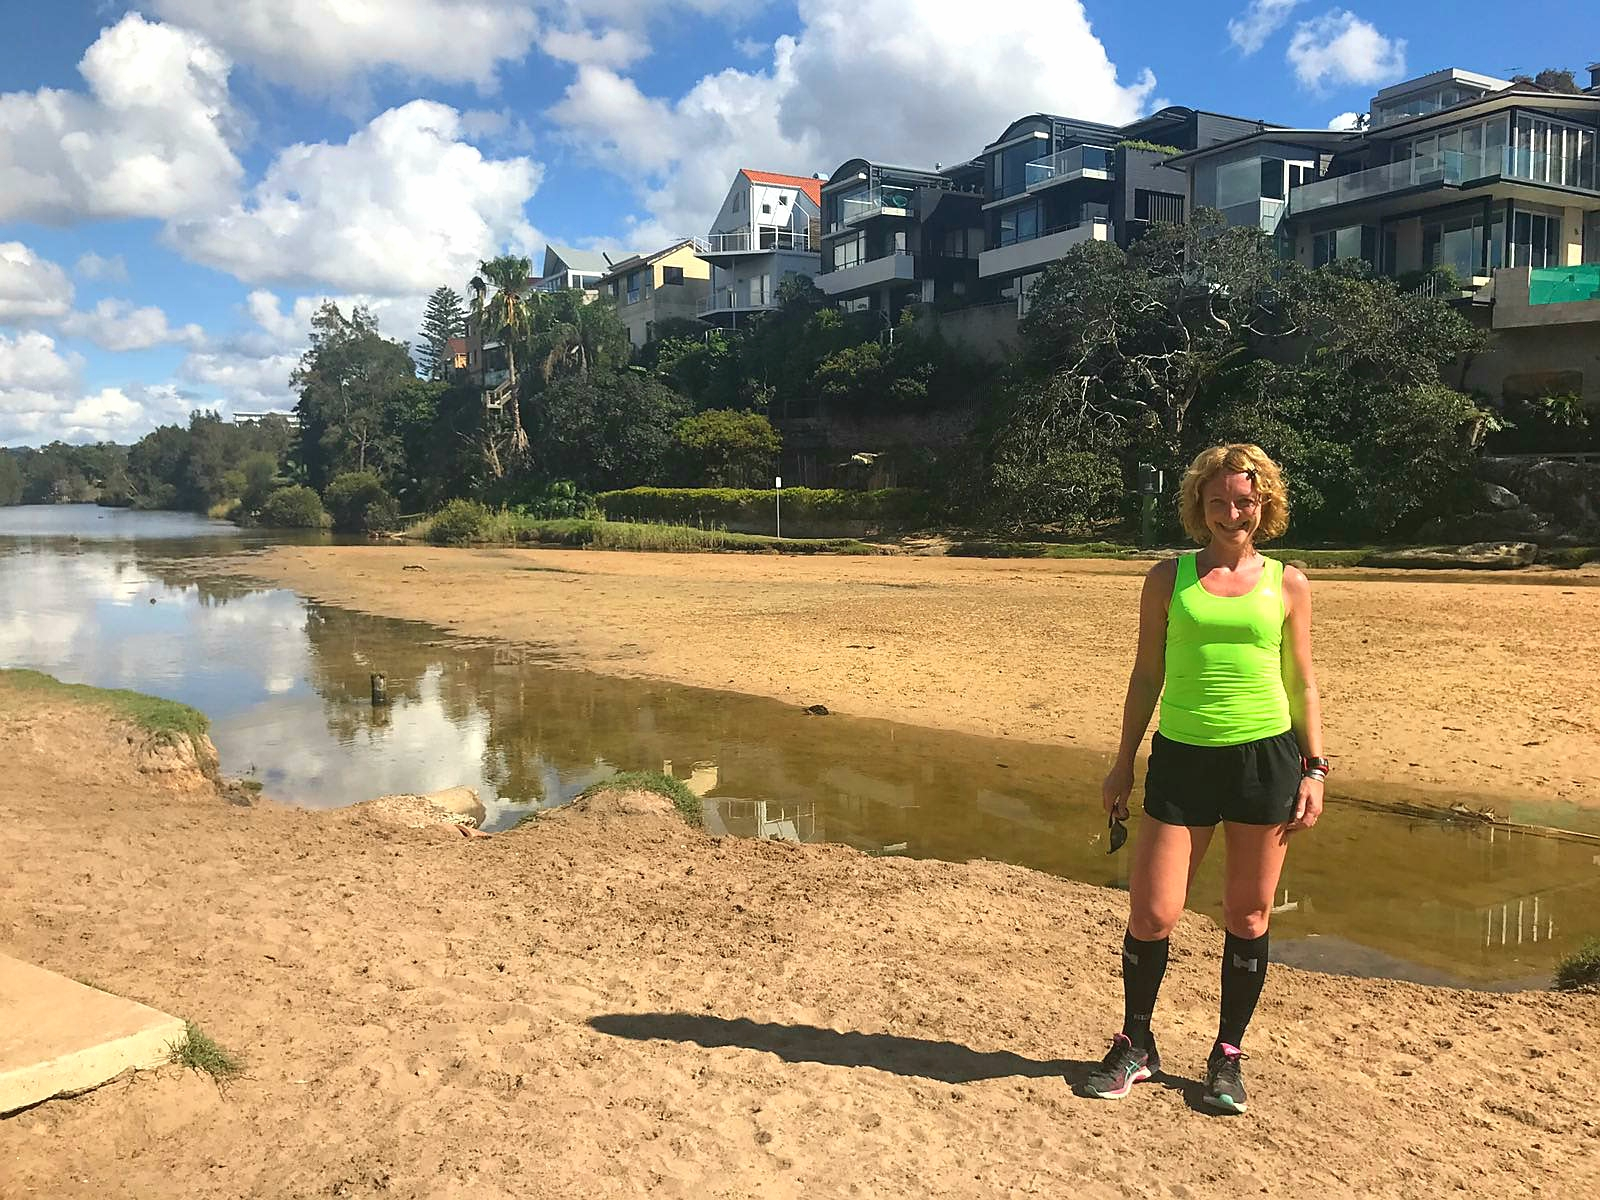 Hardlopen in Manly, de lagoon